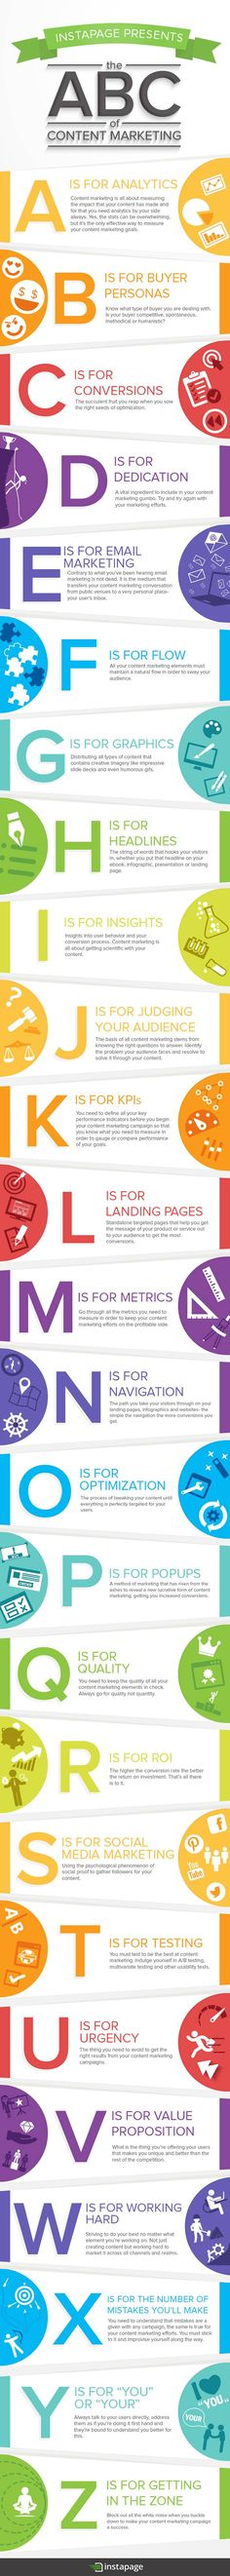 The folks at Instapage have published an infographic to help you understand the basics content marketing. [infographic]